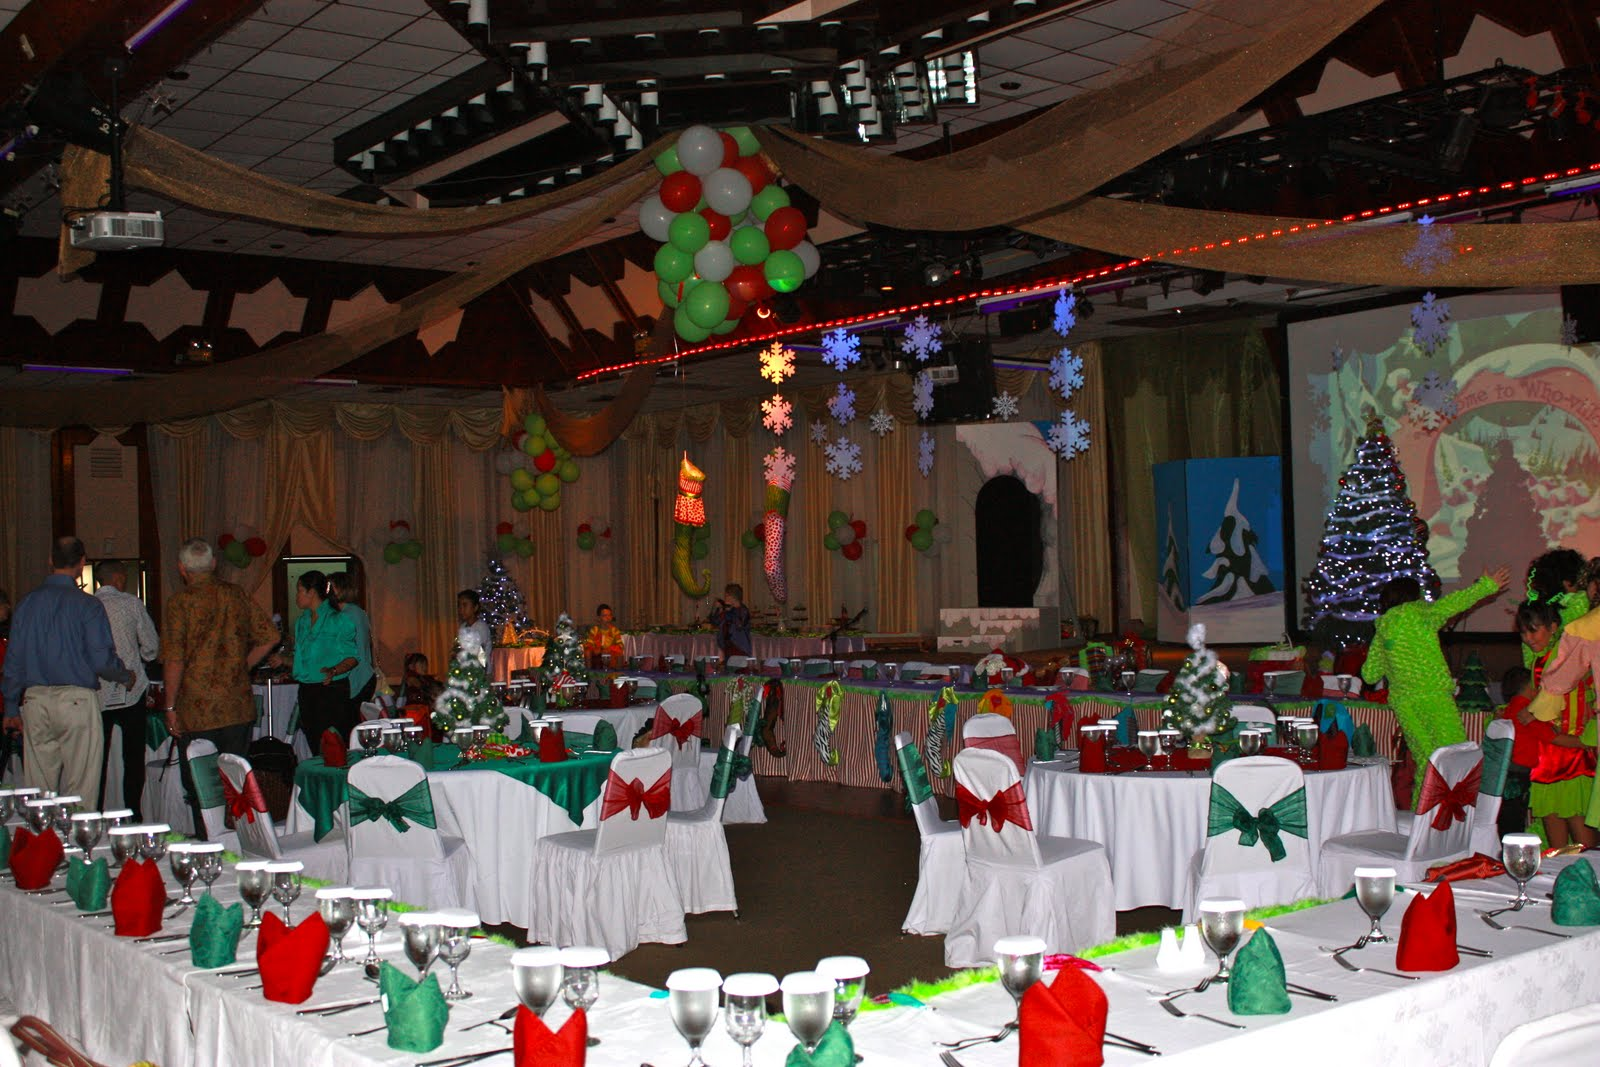 How The Grinch Stole Christmas Party Ideas Part - 19: How The Grinch Who Stole Christmas Party